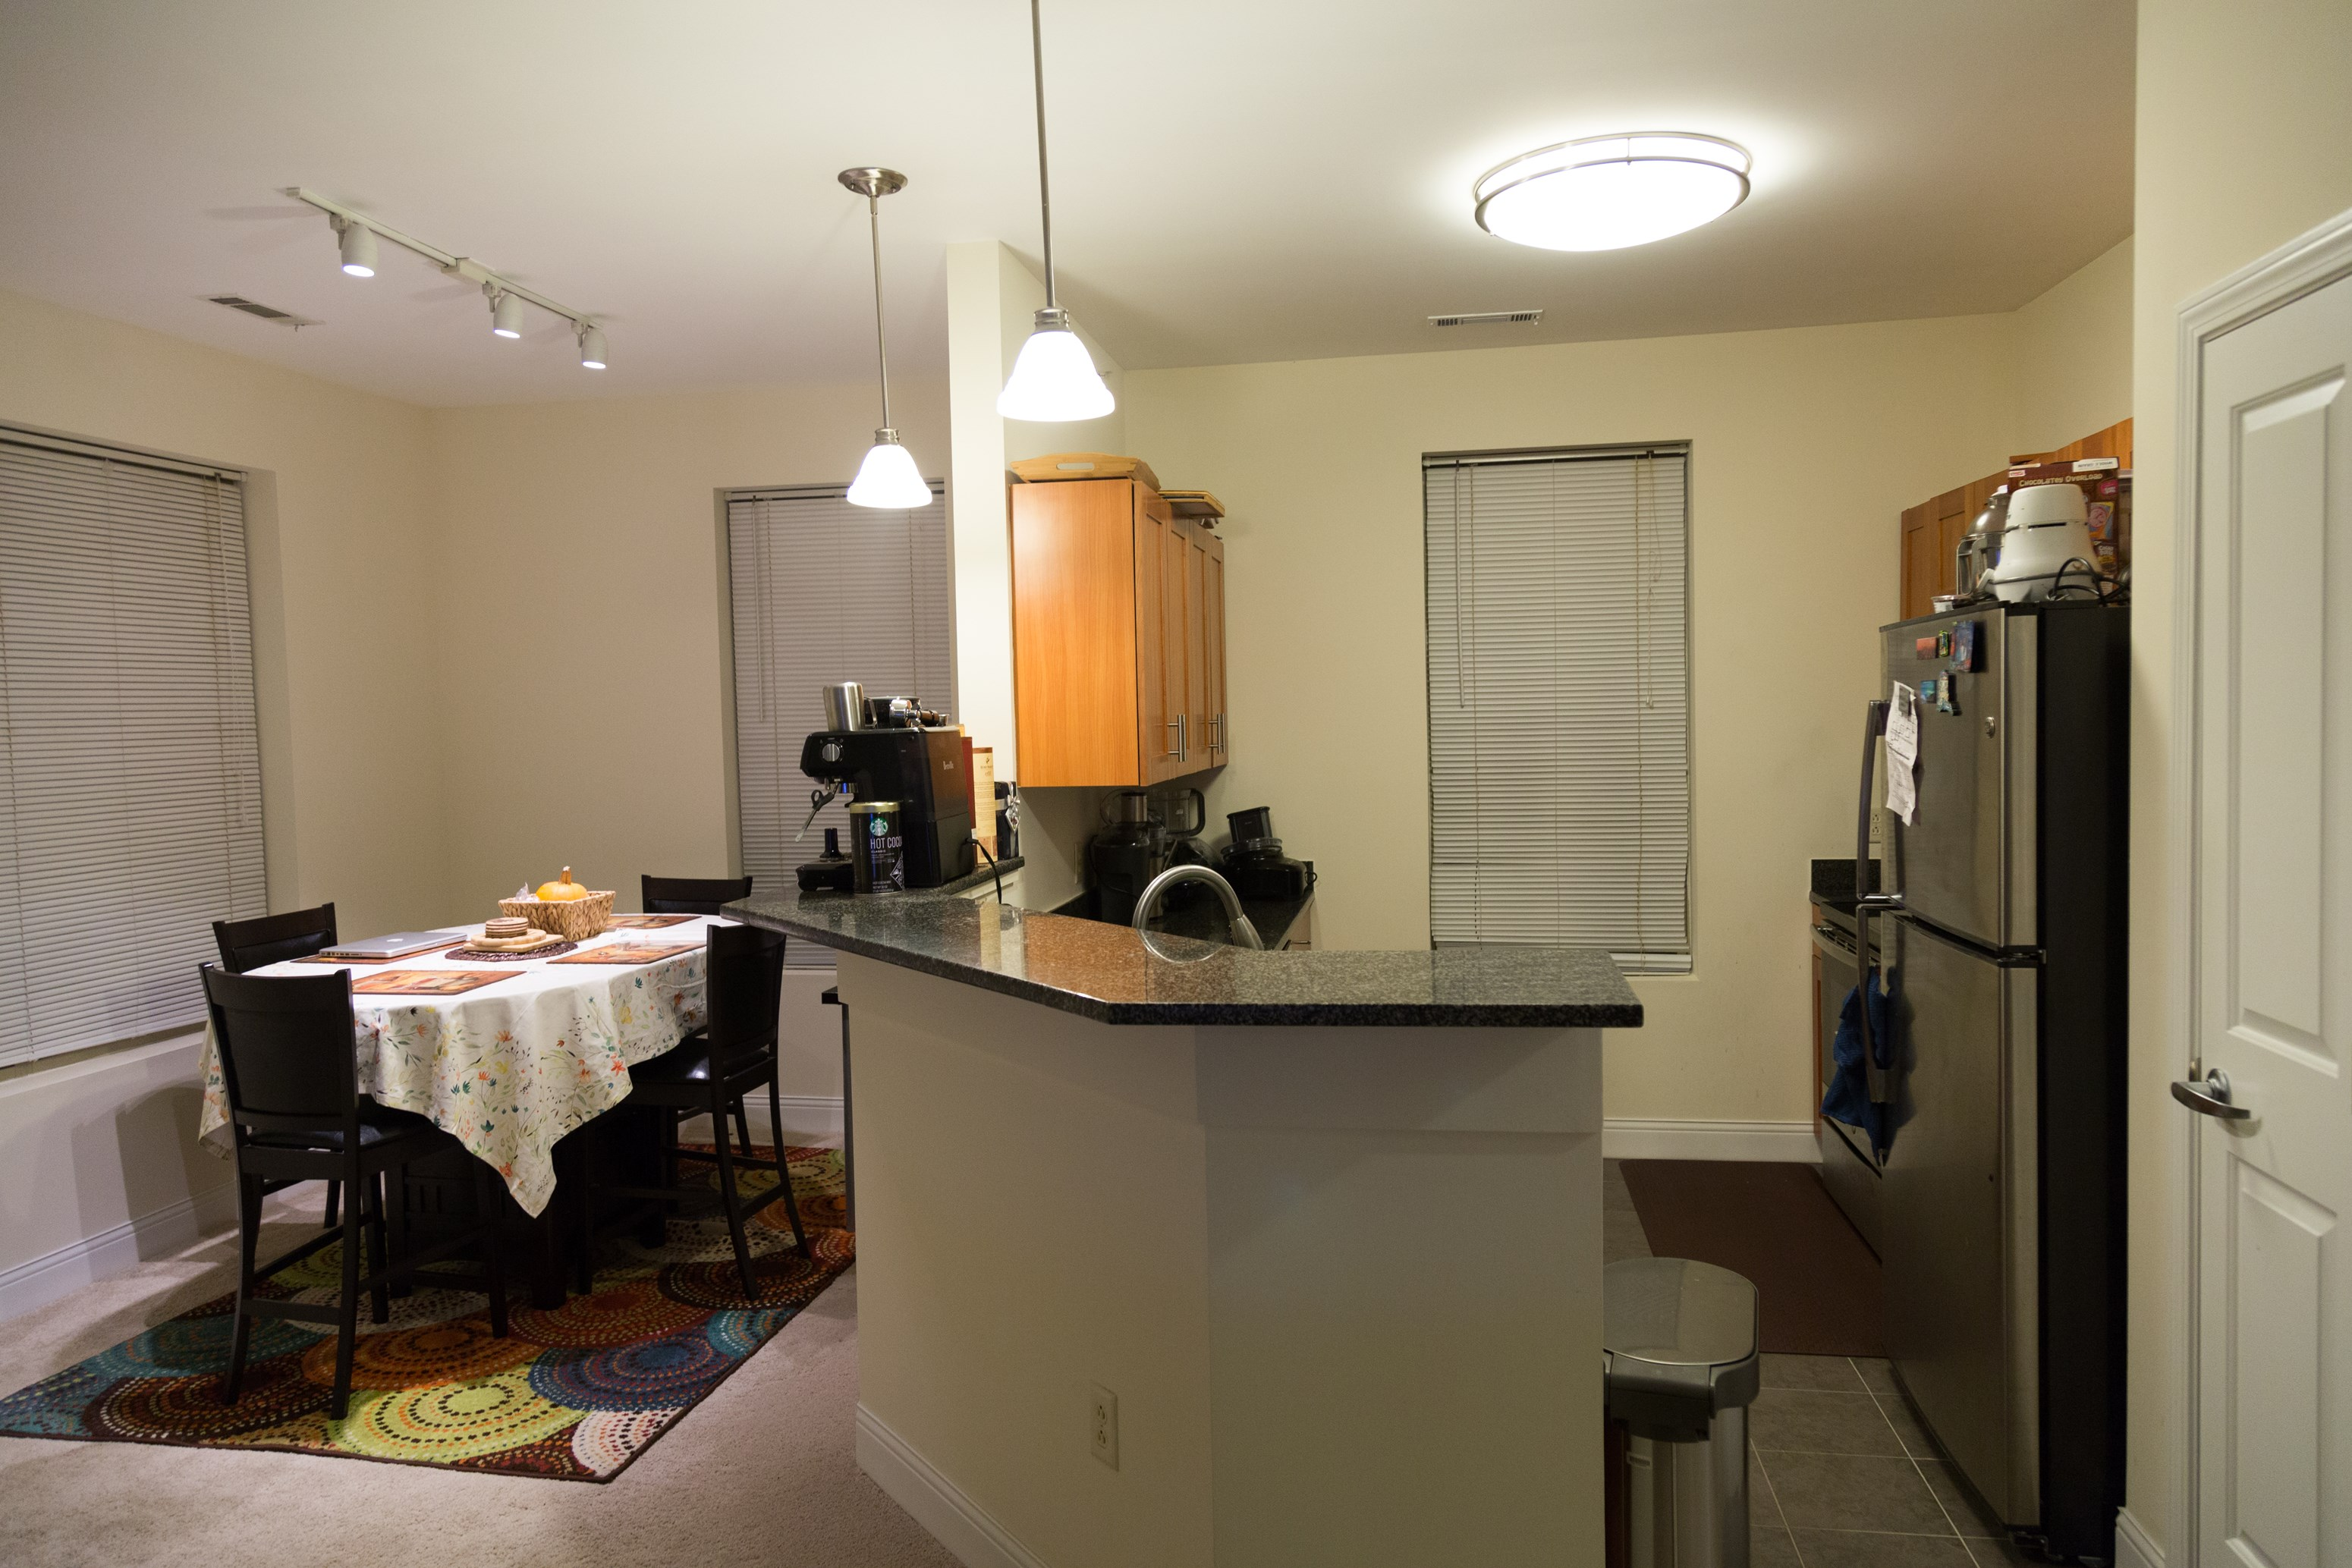 2 Bed Apt For Sublease In Windsor Ridge West Borough | 2 BHK in ...